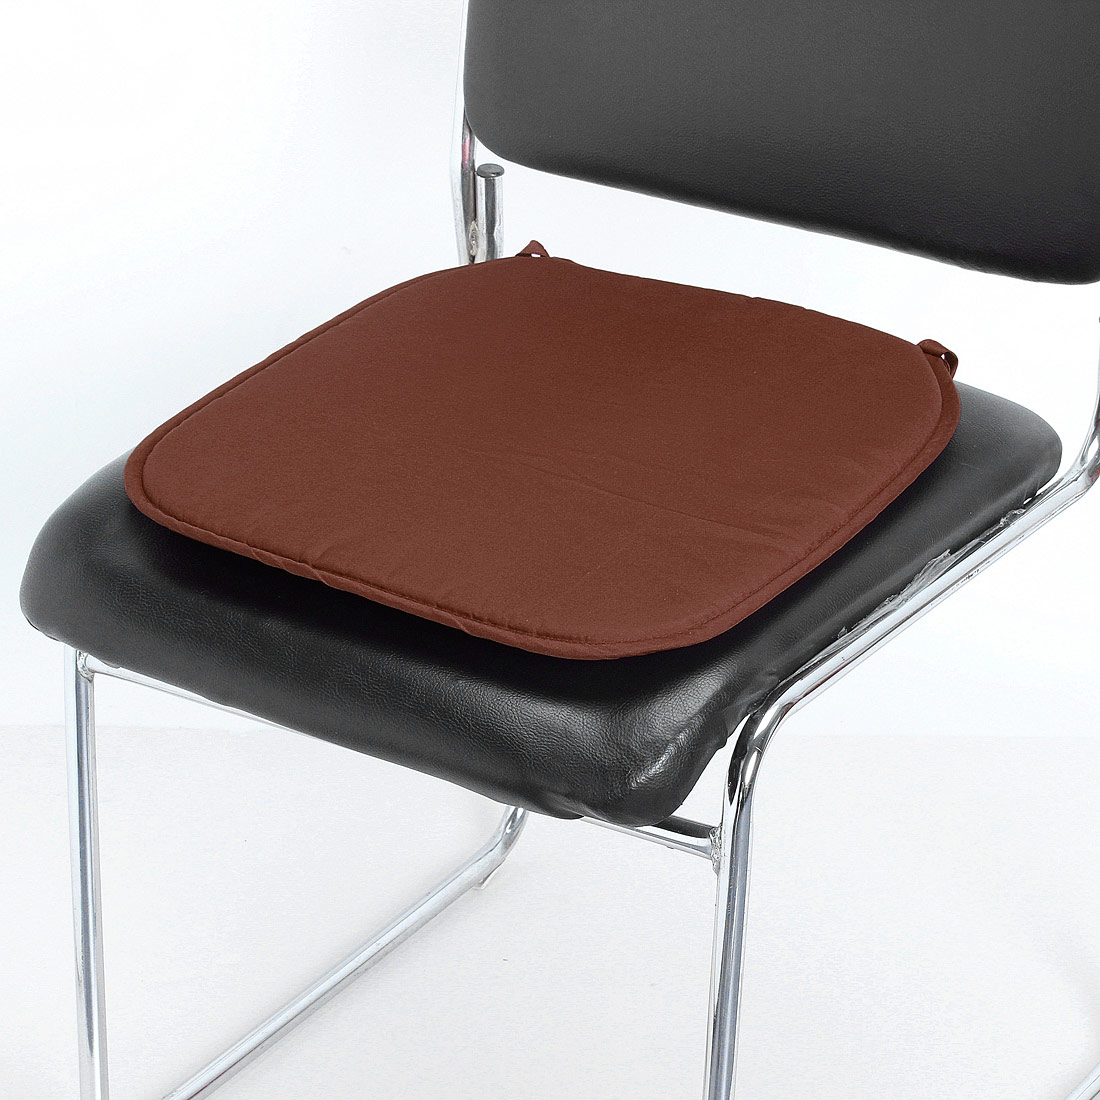 Kitchen Dining Home Garden Office Chair Seat Pads Cushion With Tie 37x37x2cm Ebay